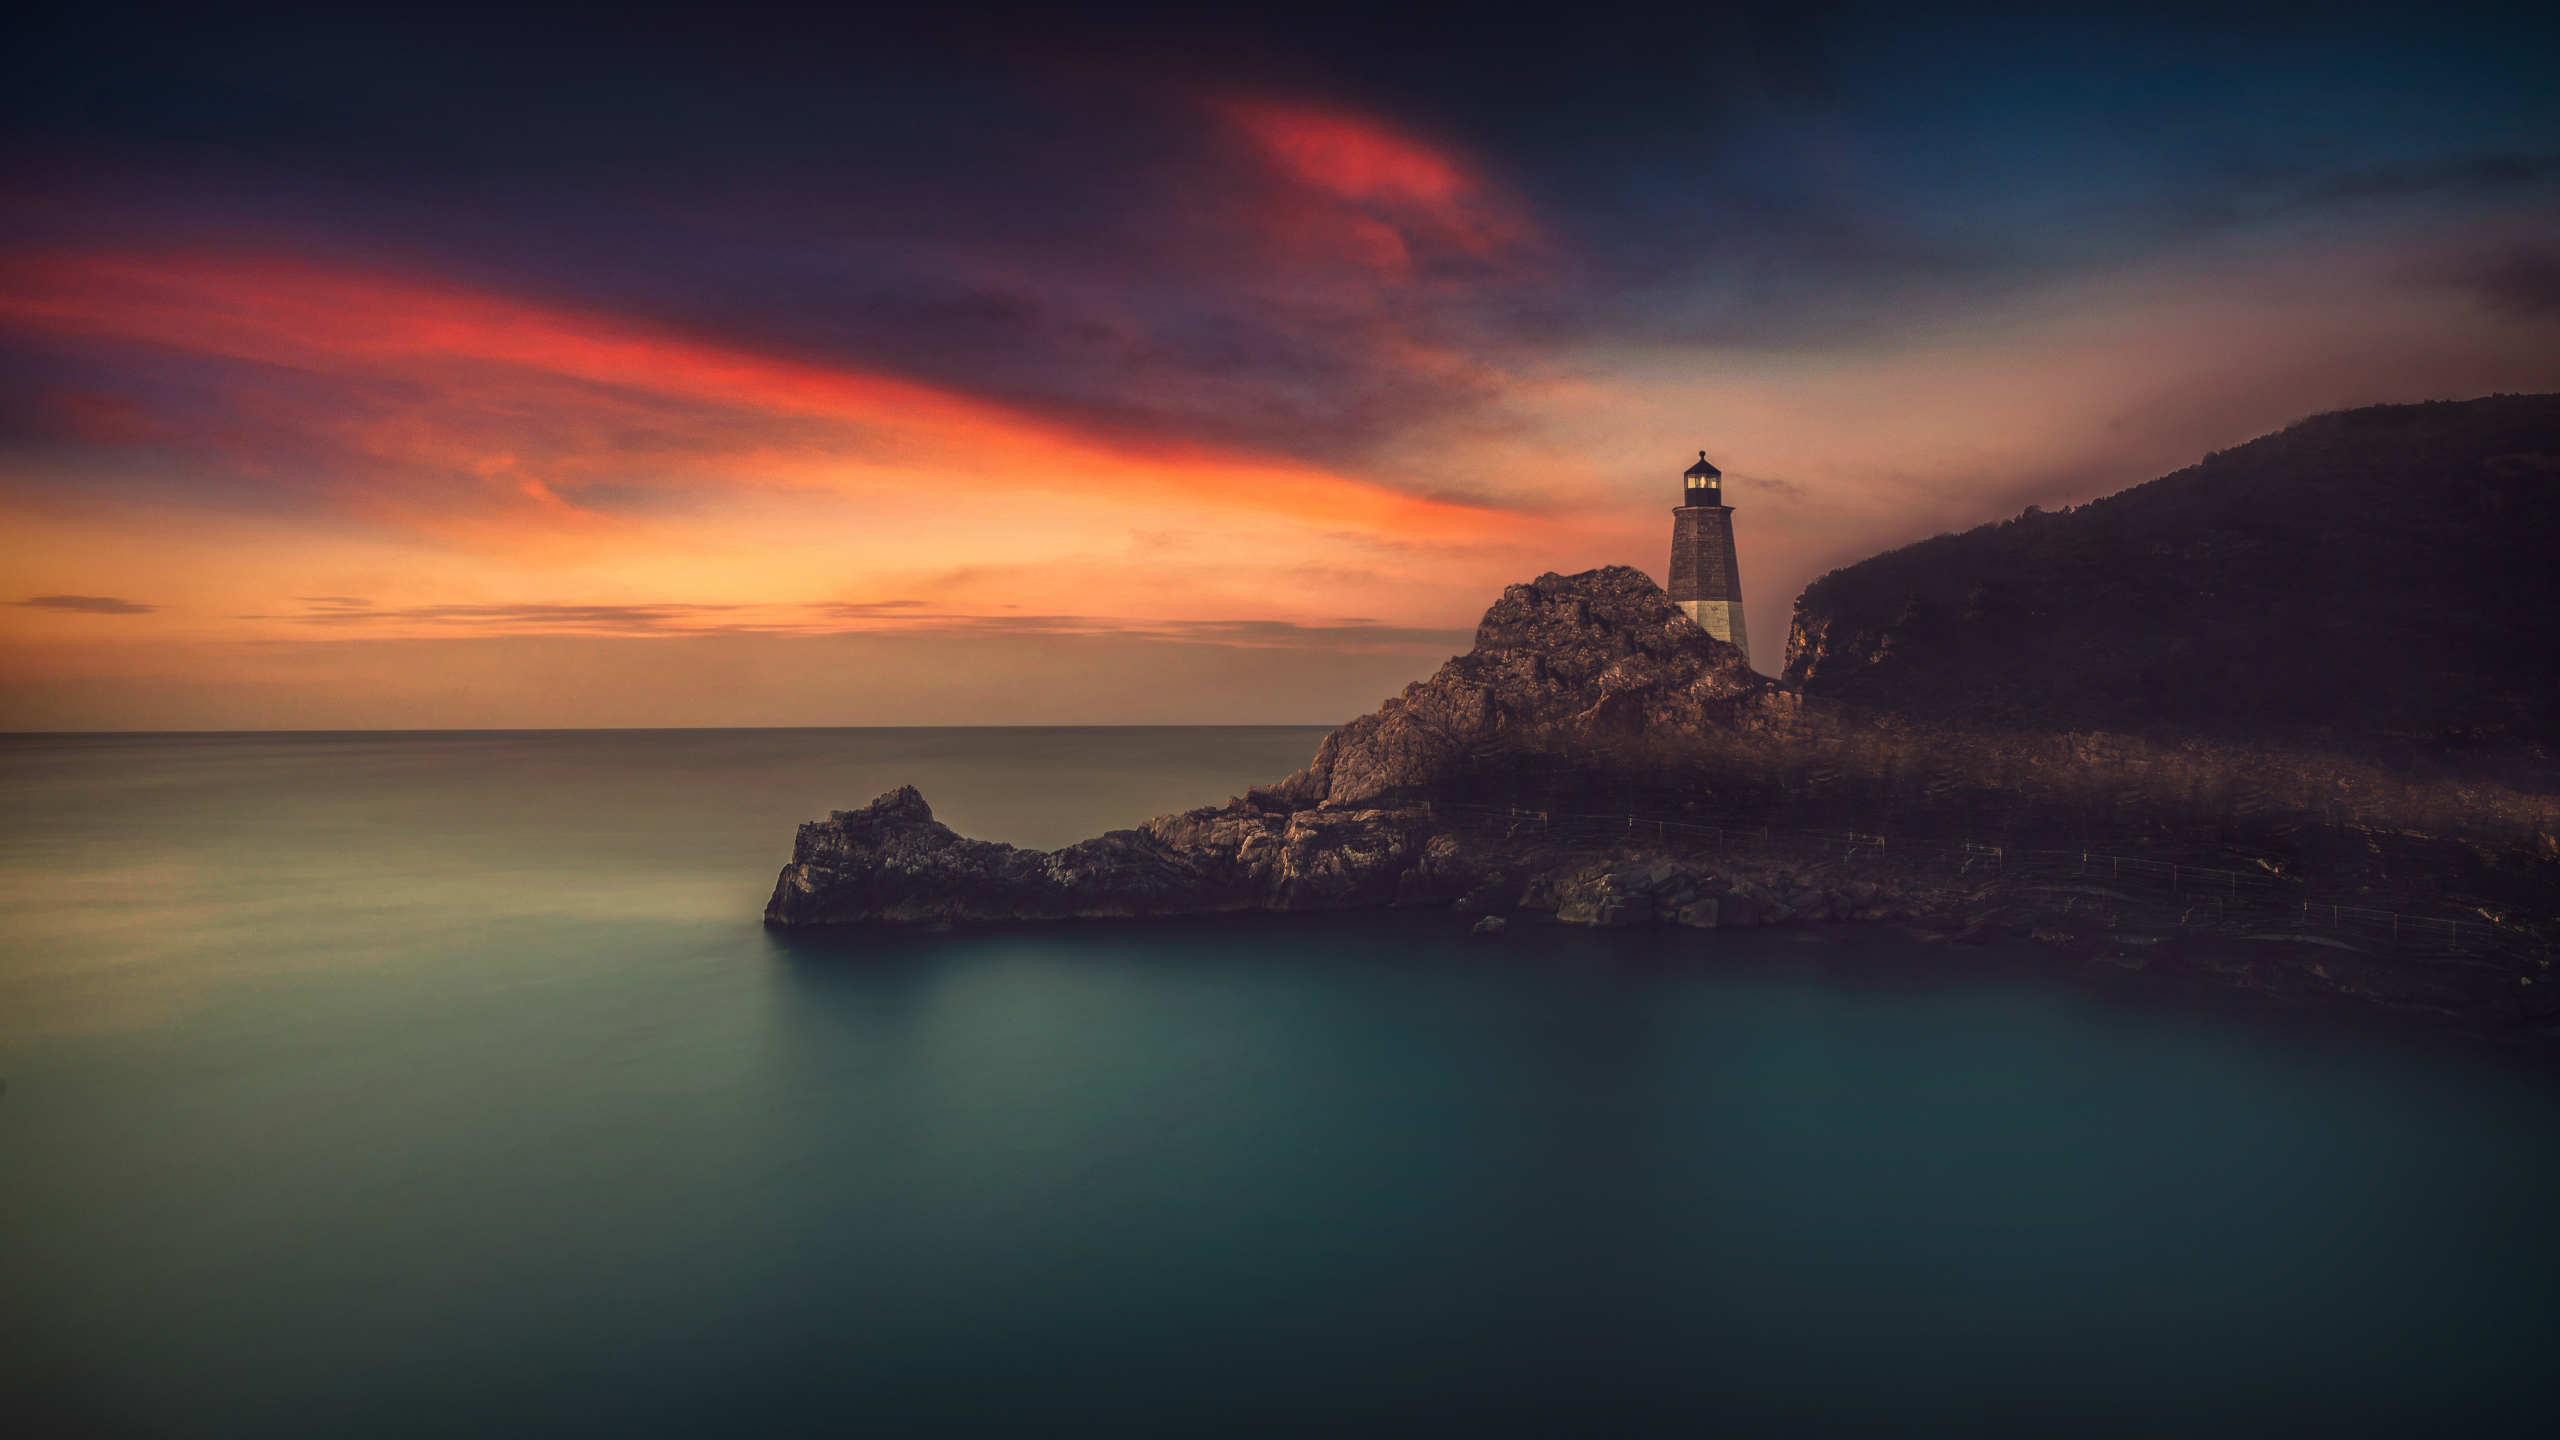 Download 2560x1440 Wallpaper Light House At Beach In Night, Dual